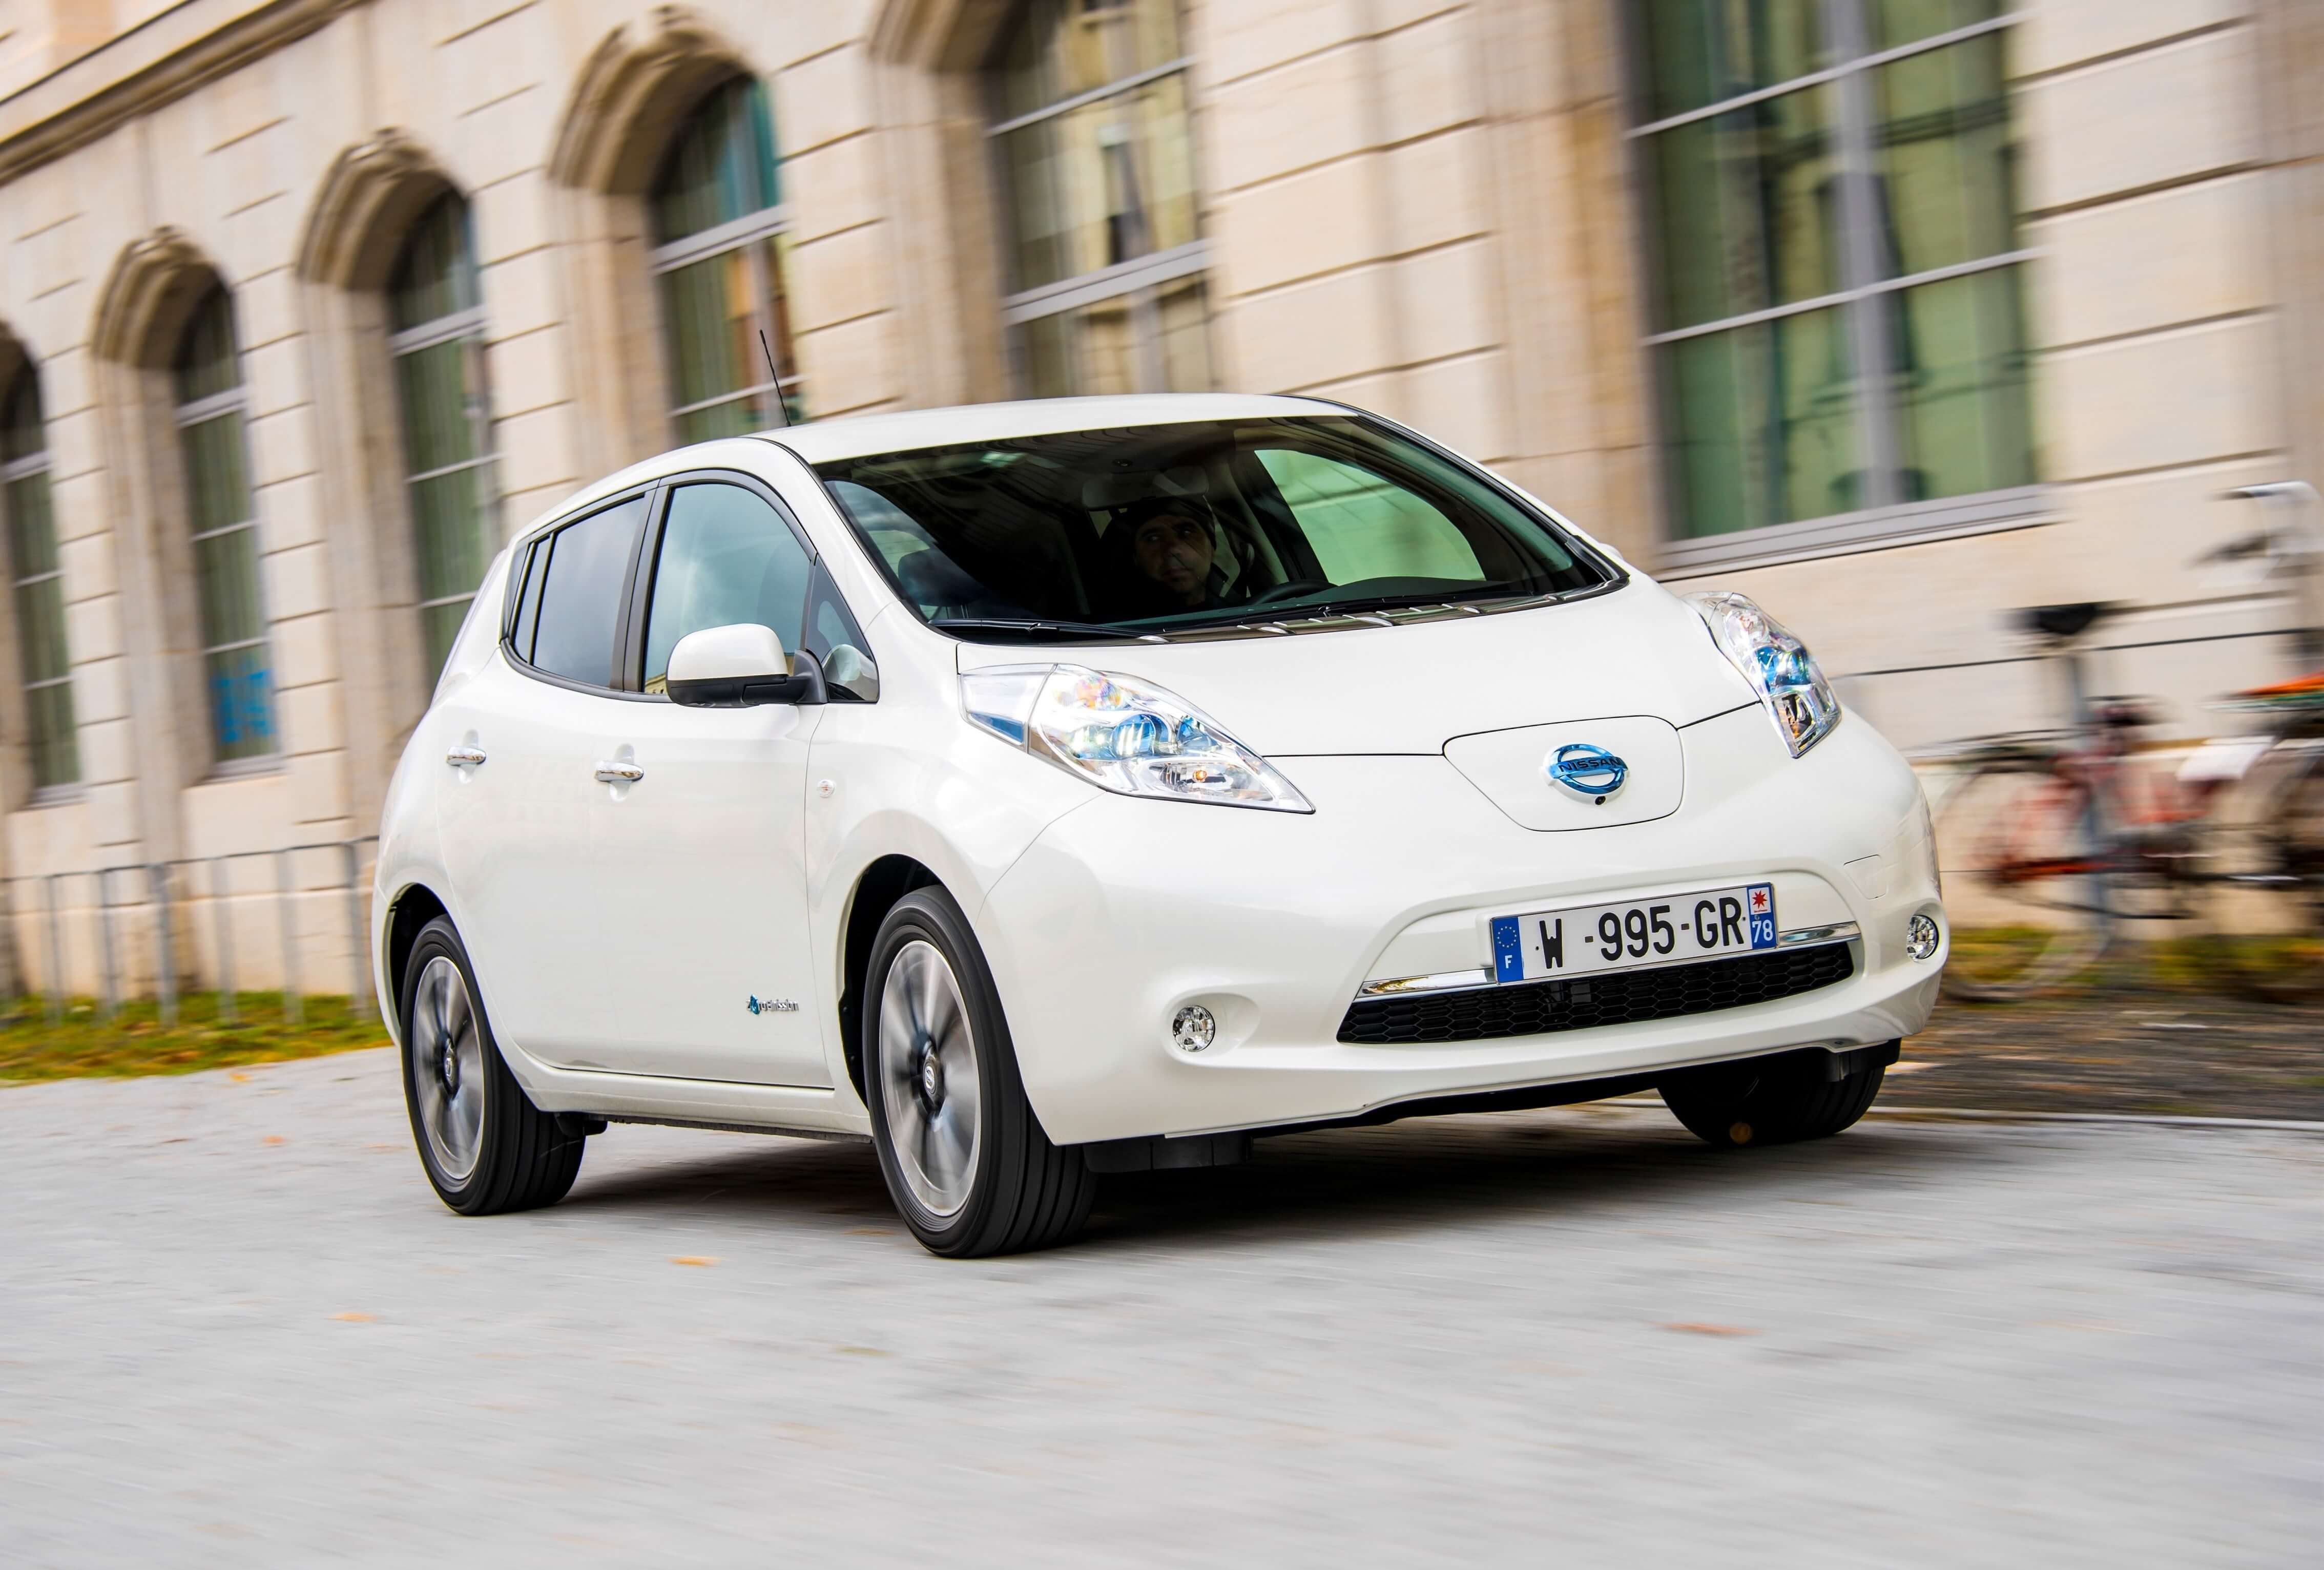 Nissan LEAFcompresed